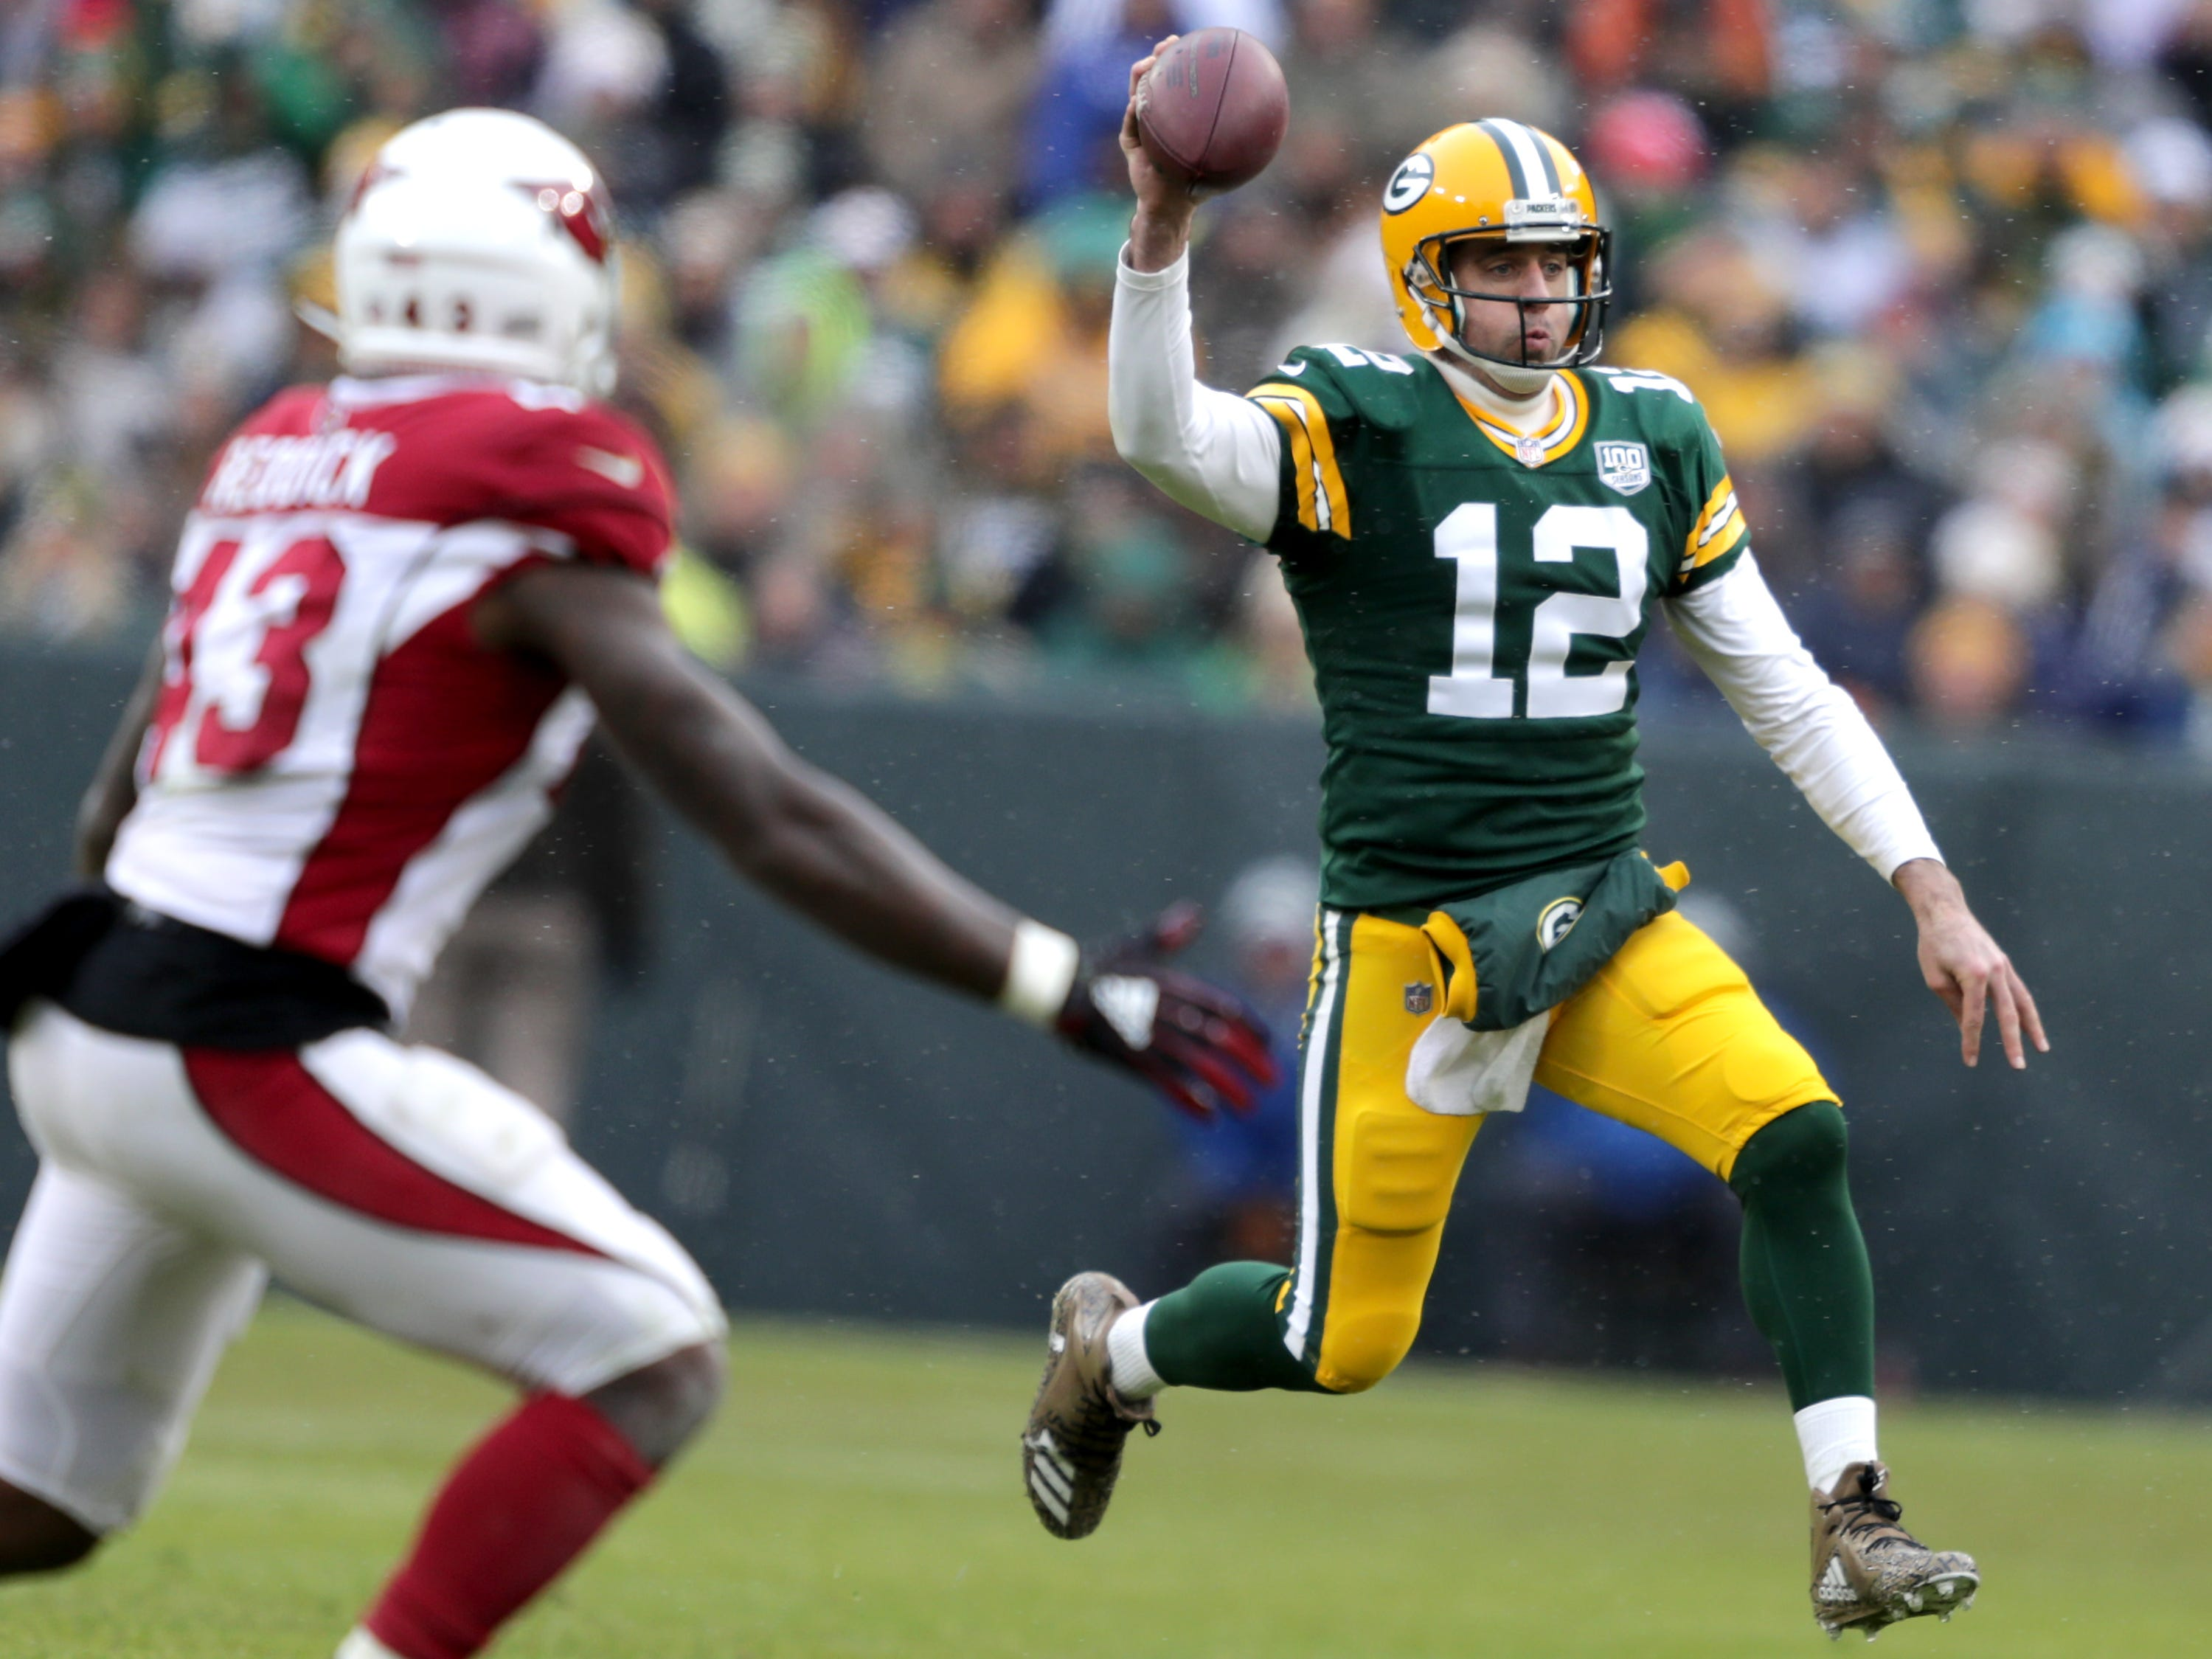 Green Bay Packers quarterback Aaron Rodgers against the Arizona Cardinals during their football game on Sunday, December 2, 2018, at Lambeau Field in Green Bay, Wis. Wm. Glasheen/USA TODAY NETWORK-Wisconsin.